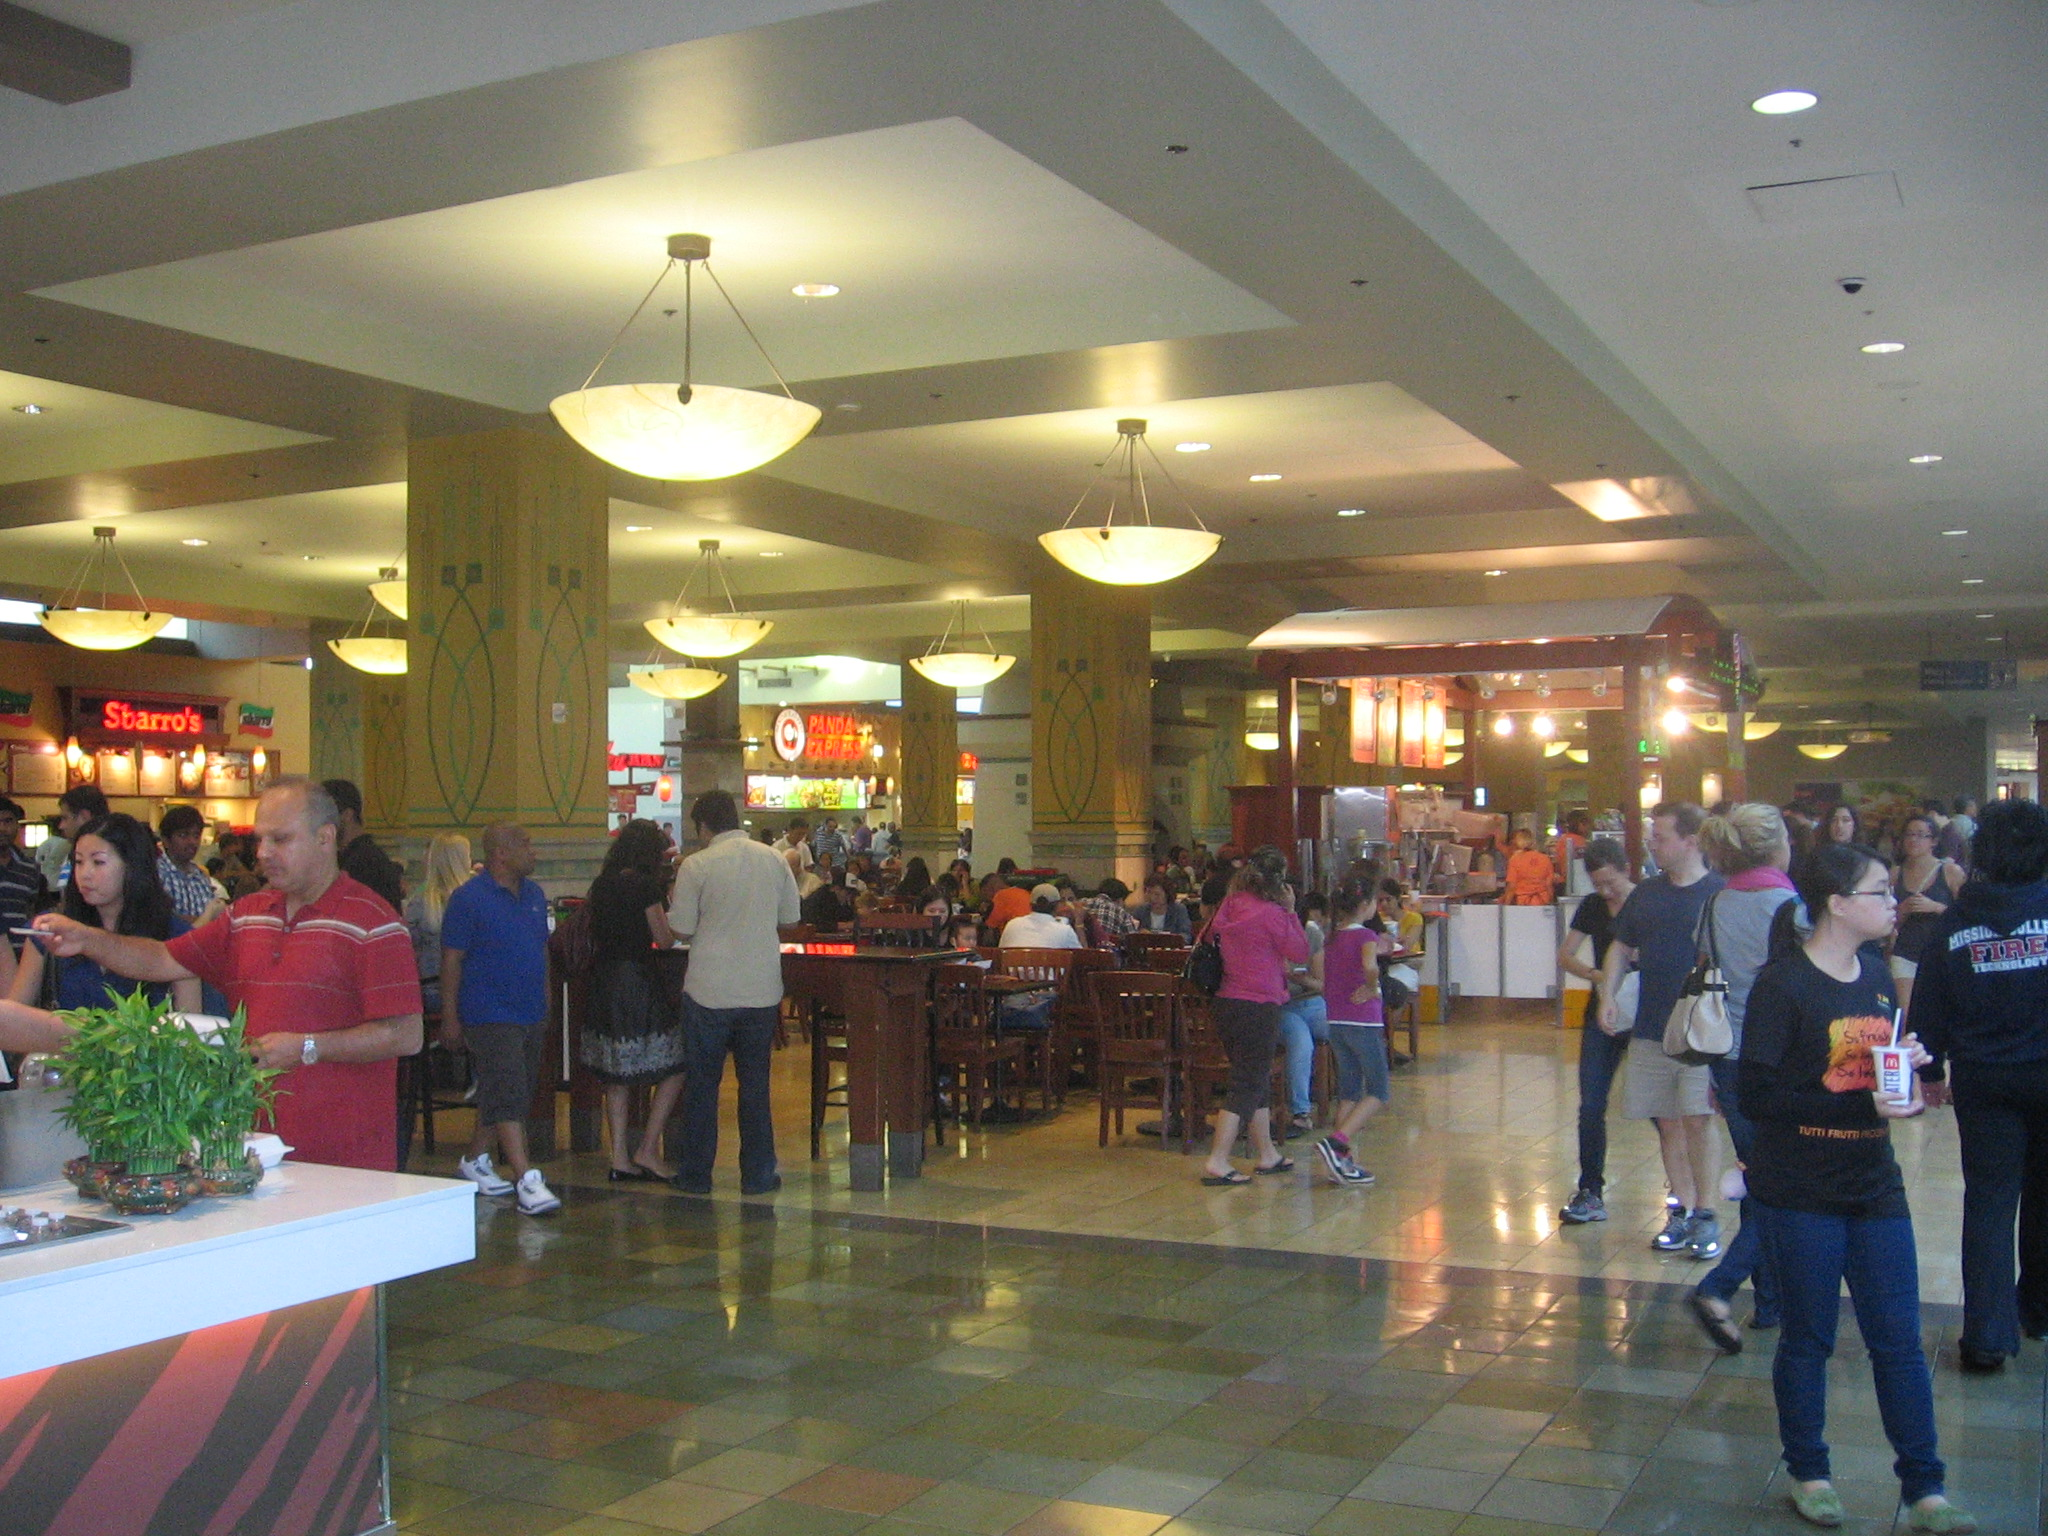 Food Court In The Galleria Mall